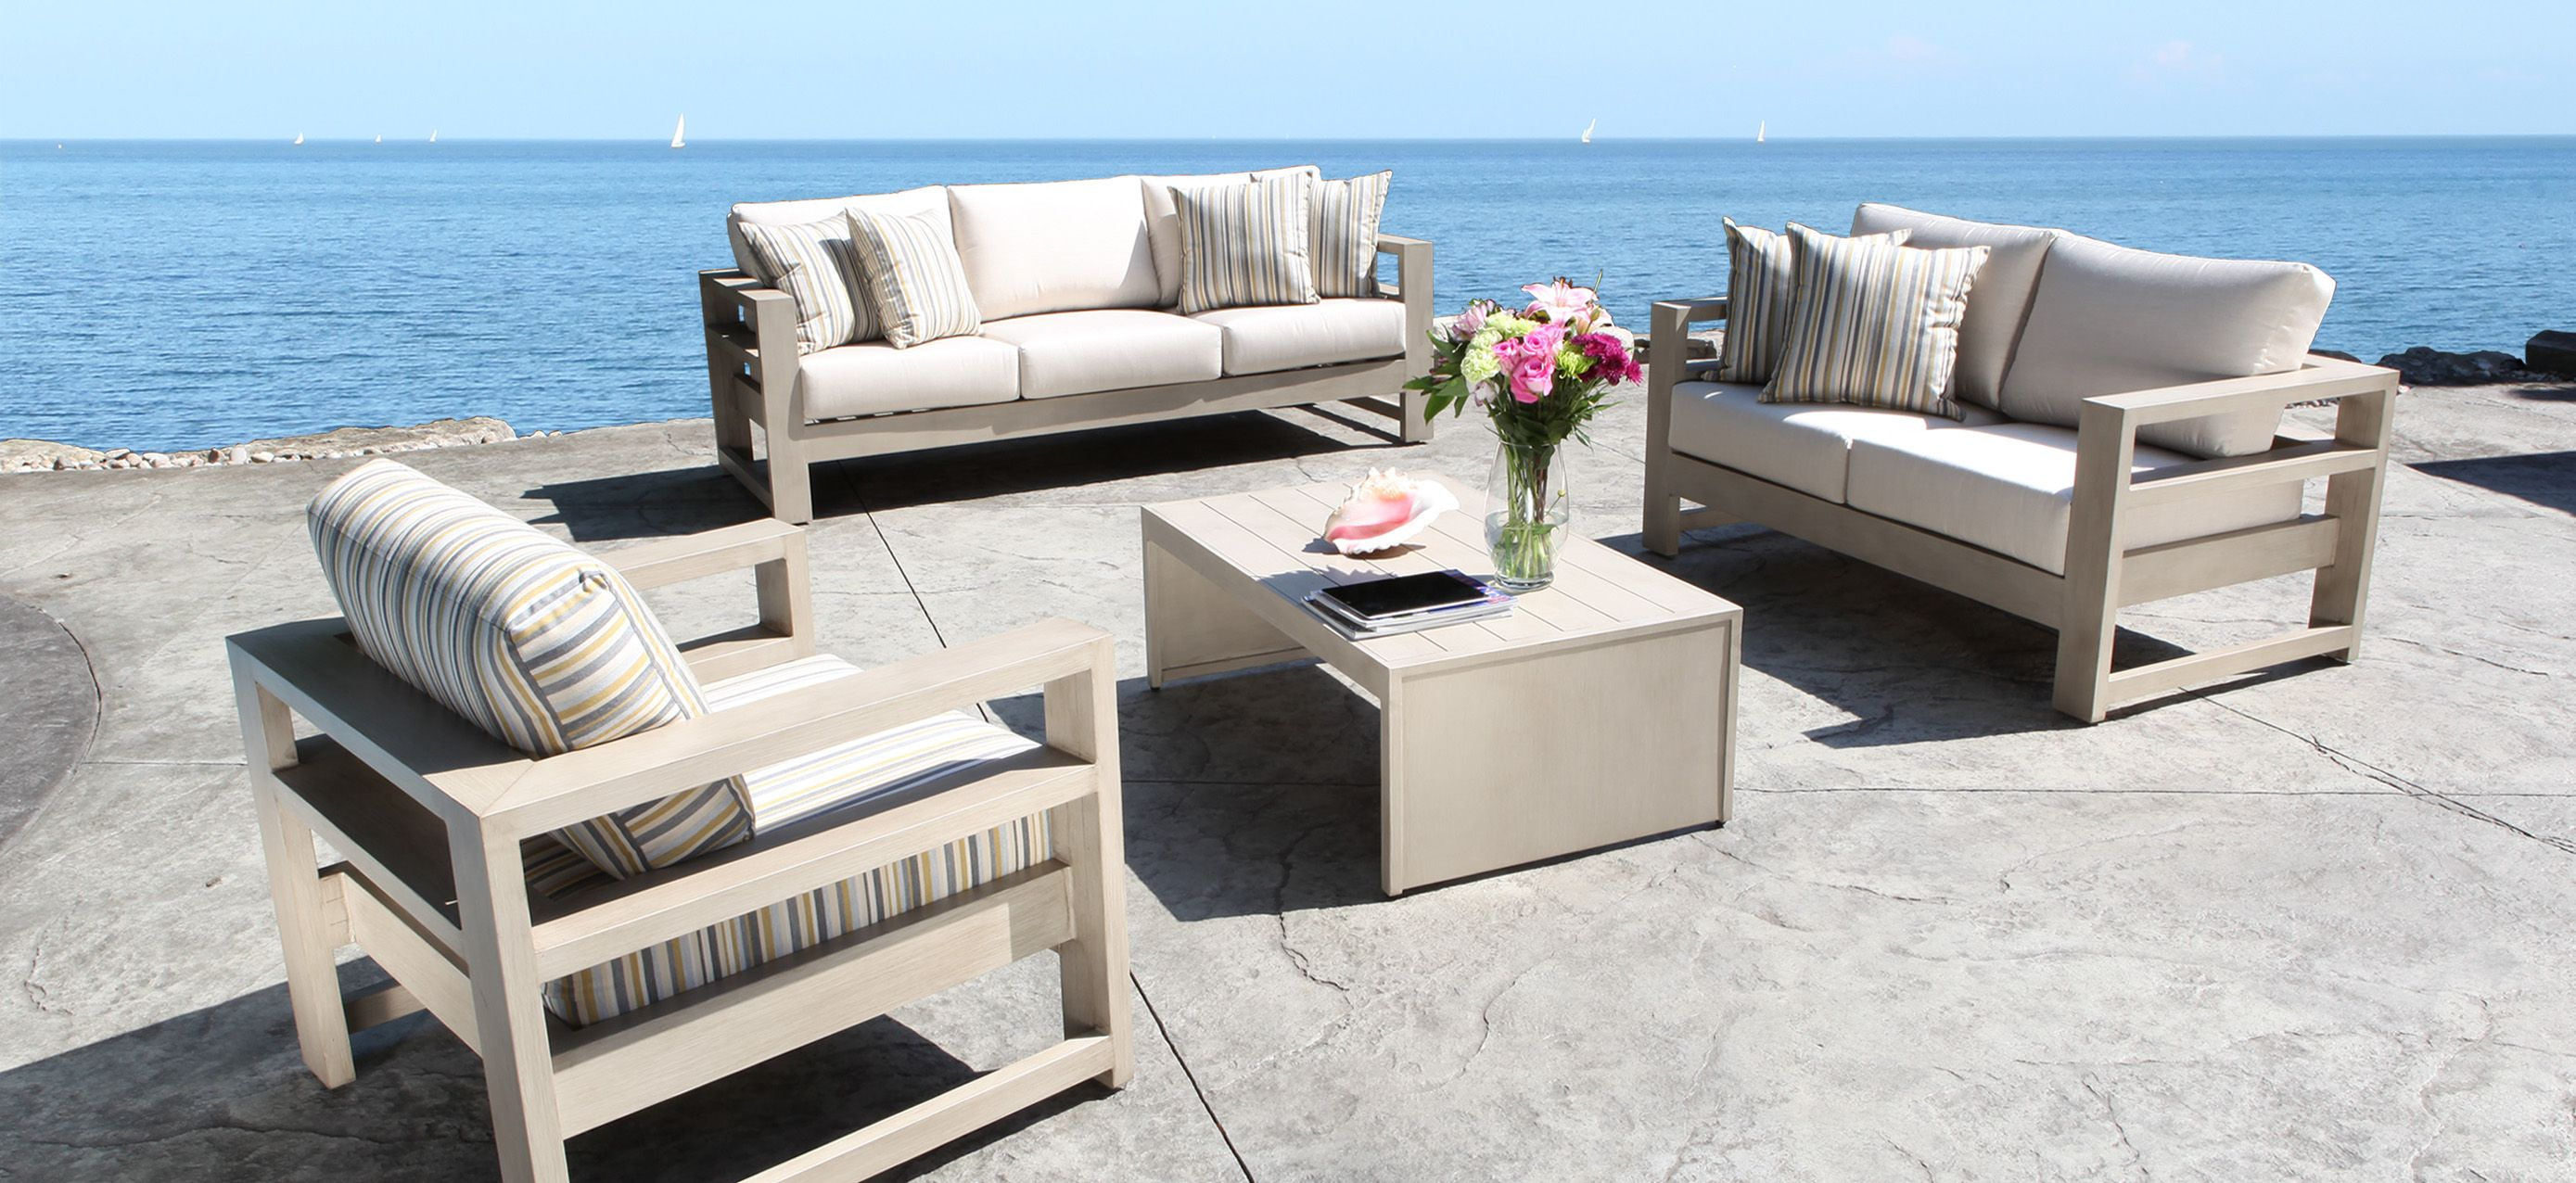 Aura Cast Aluminum Patio Furniture Conversation Set With A Modern Luxury  Design In Toronto